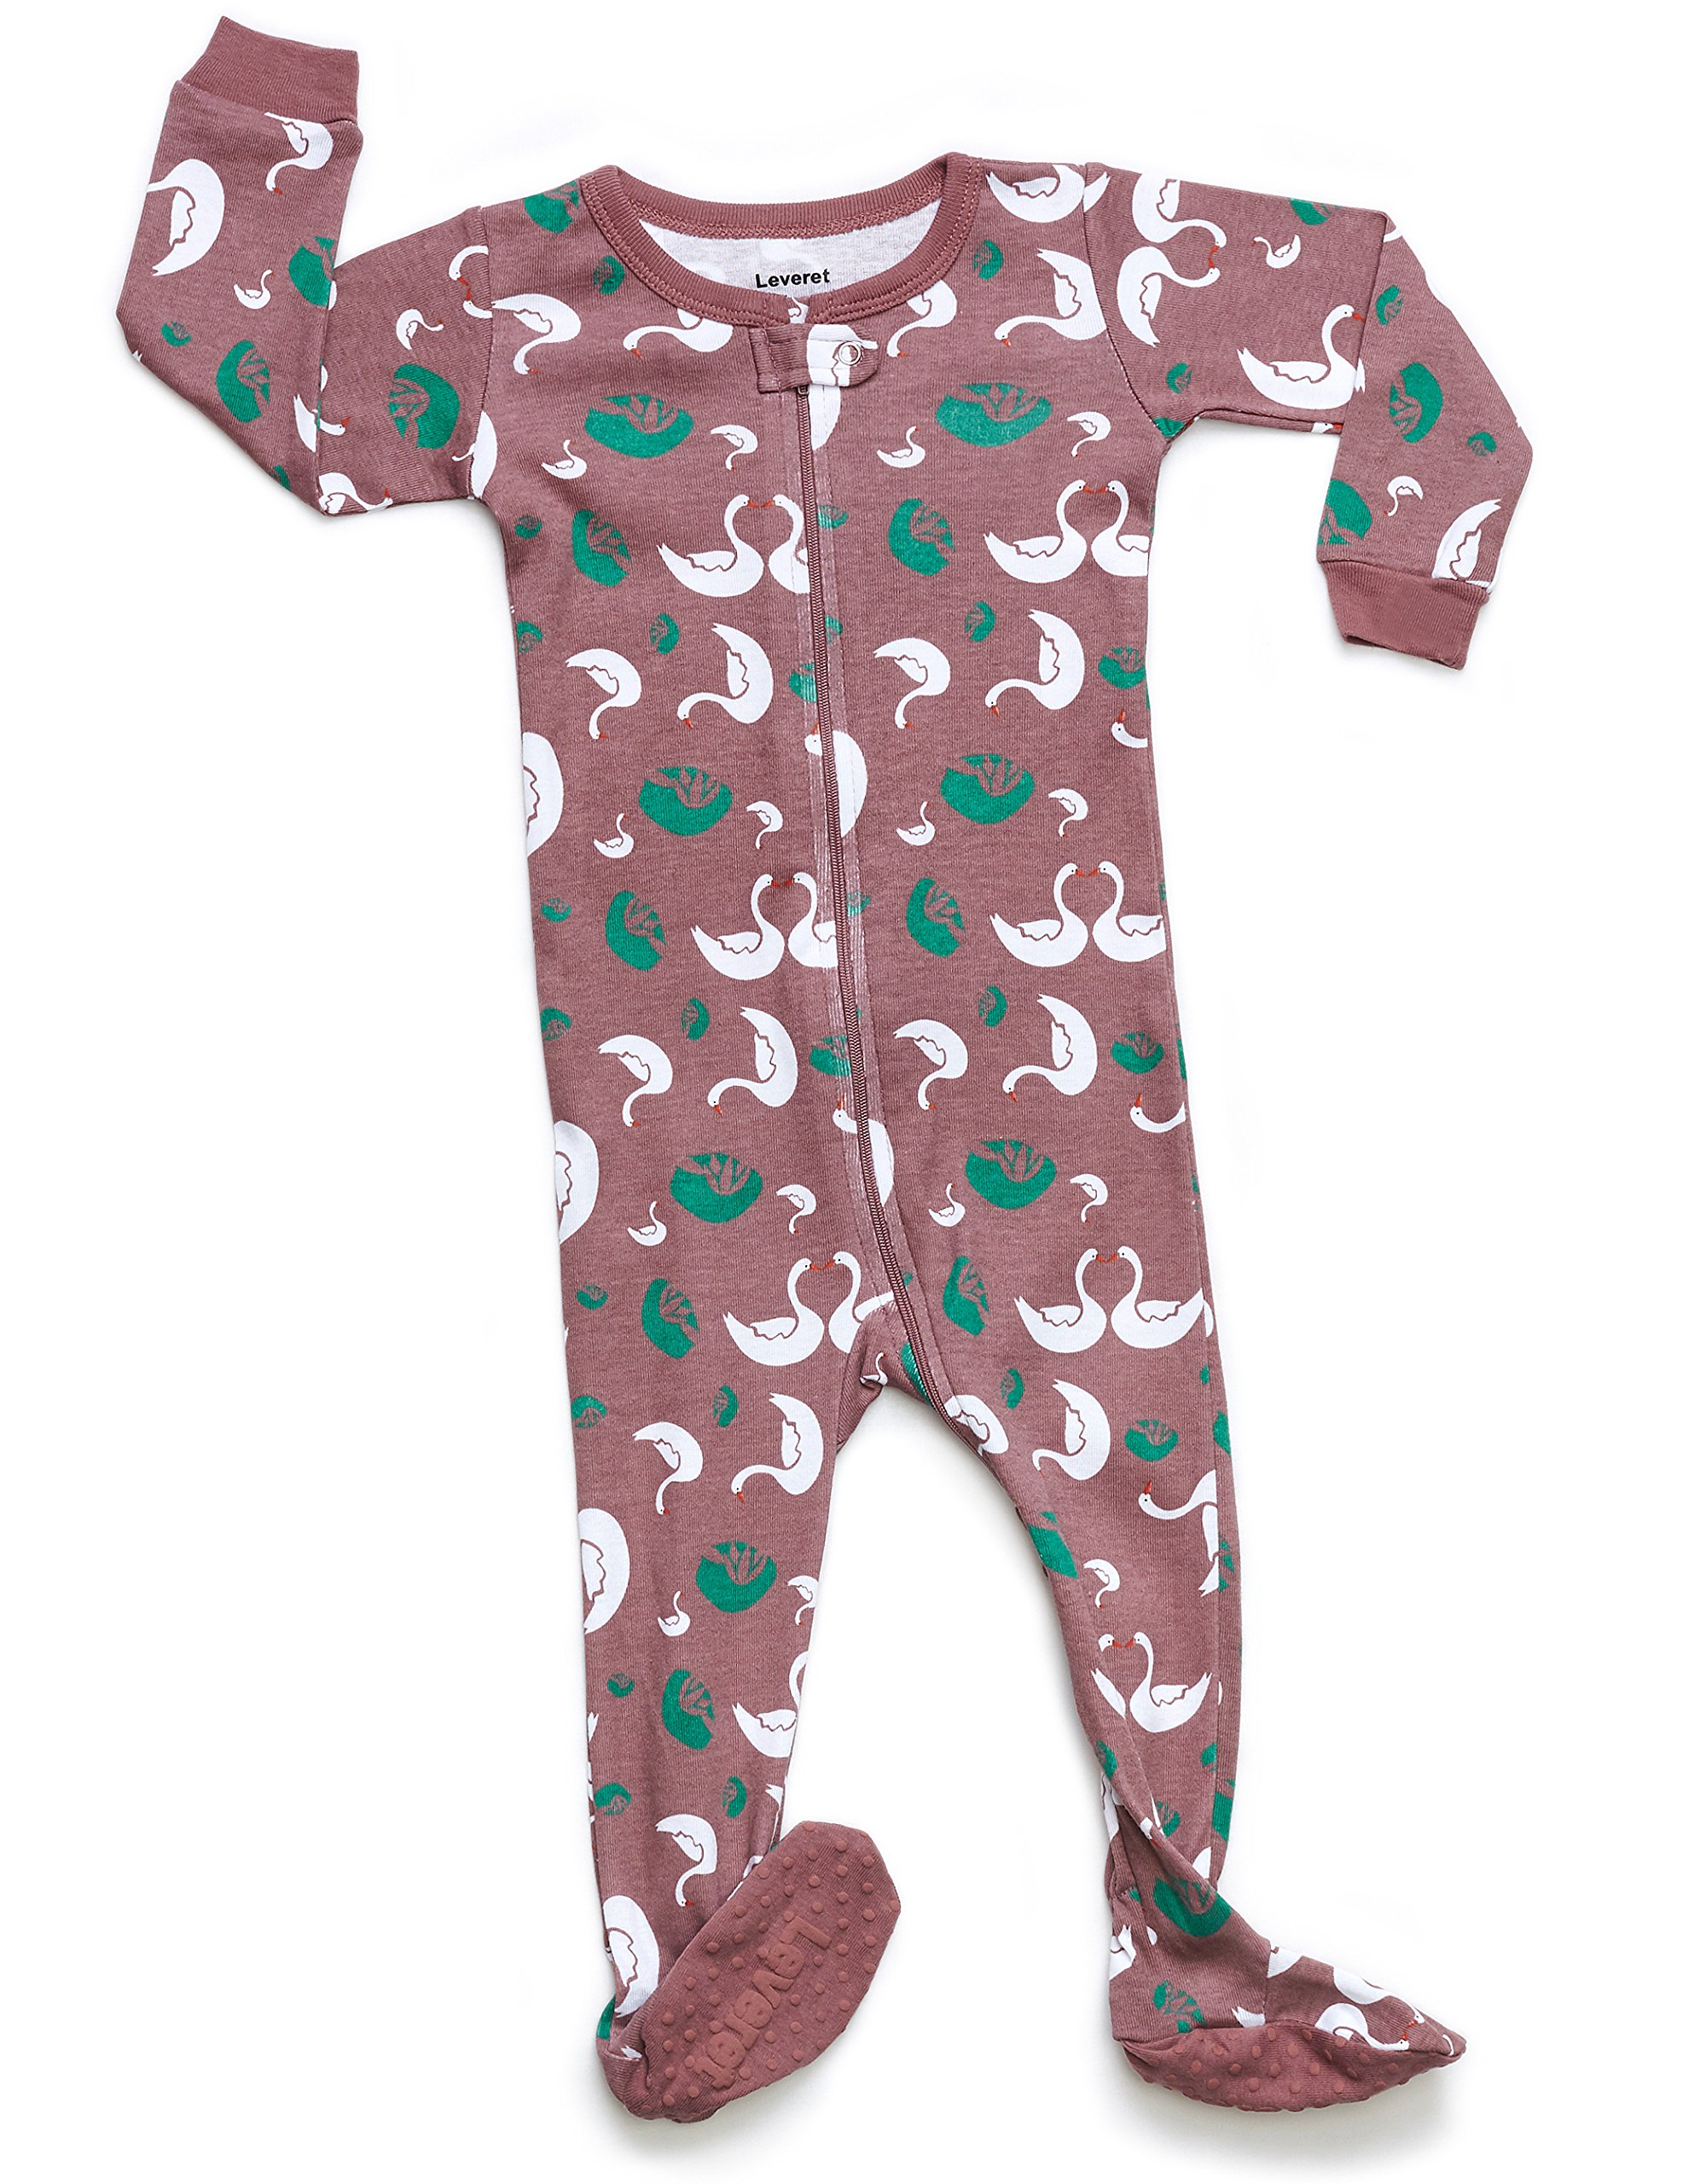 Leveret Kids Organic Cotton Swan Baby Boys Girls